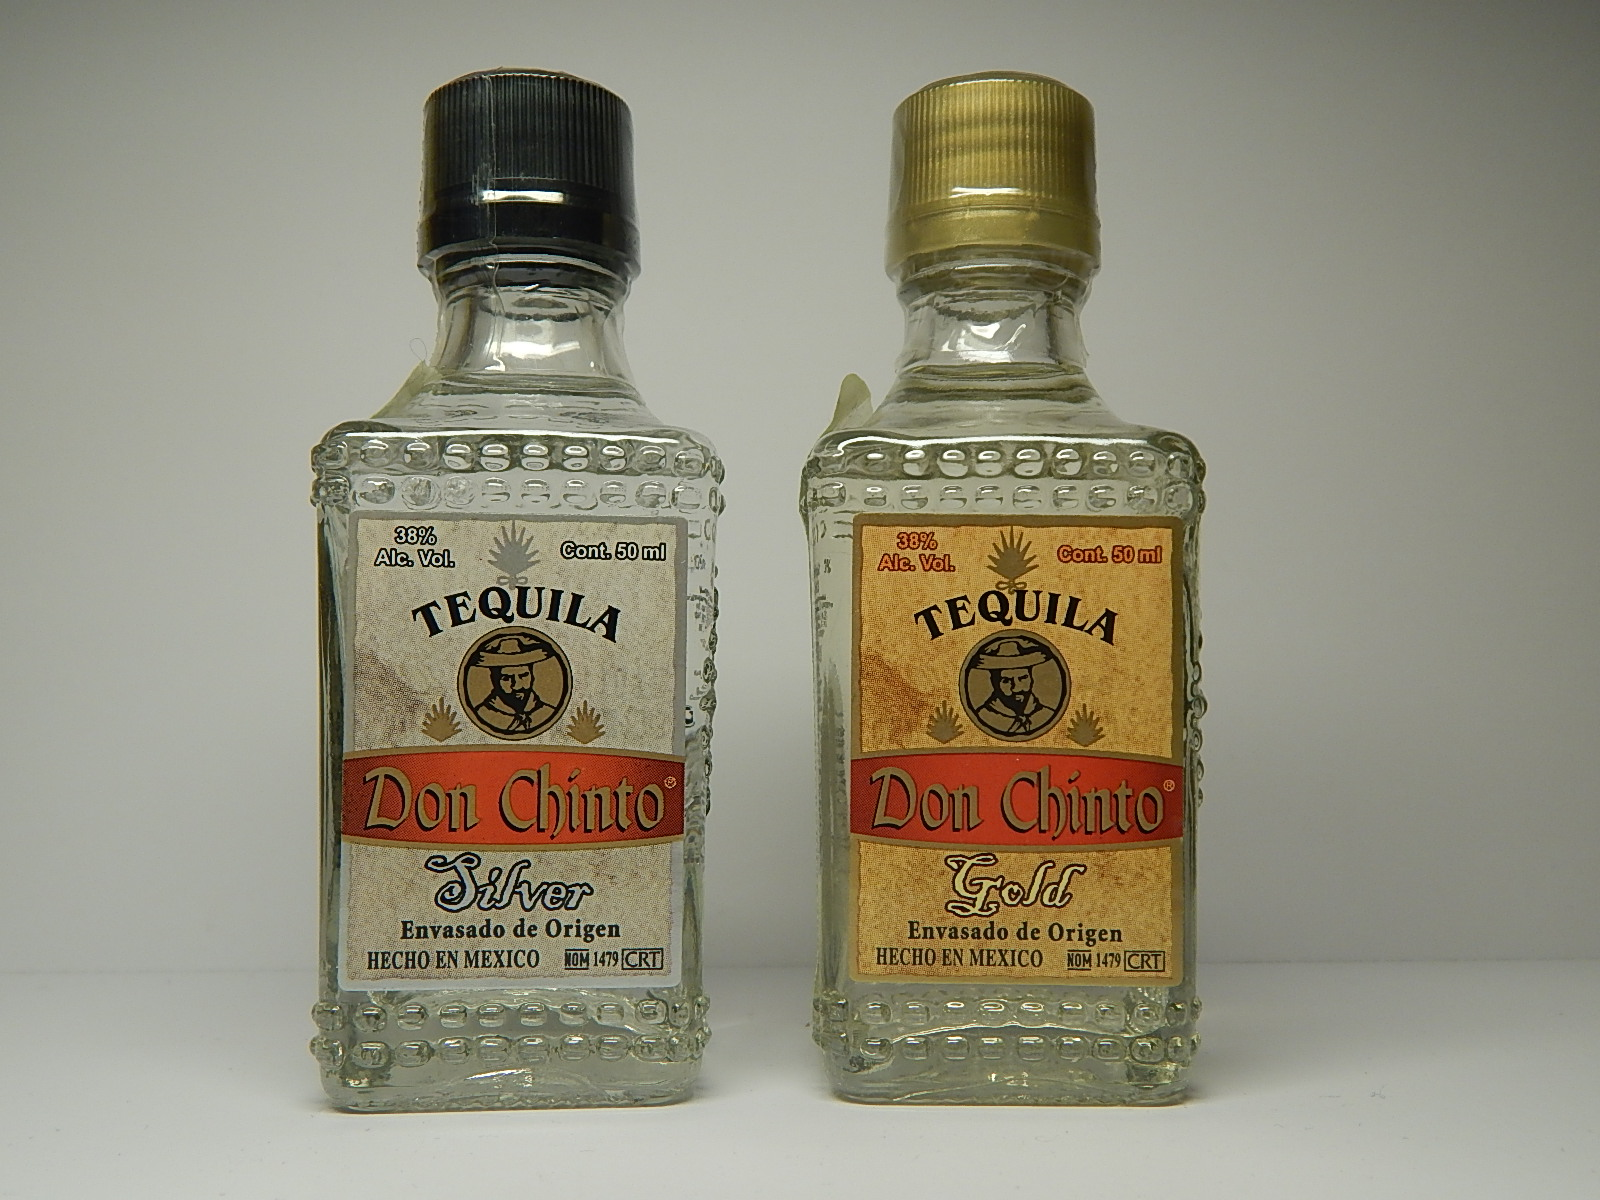 DON CHINTO Silver - Gold Tequila